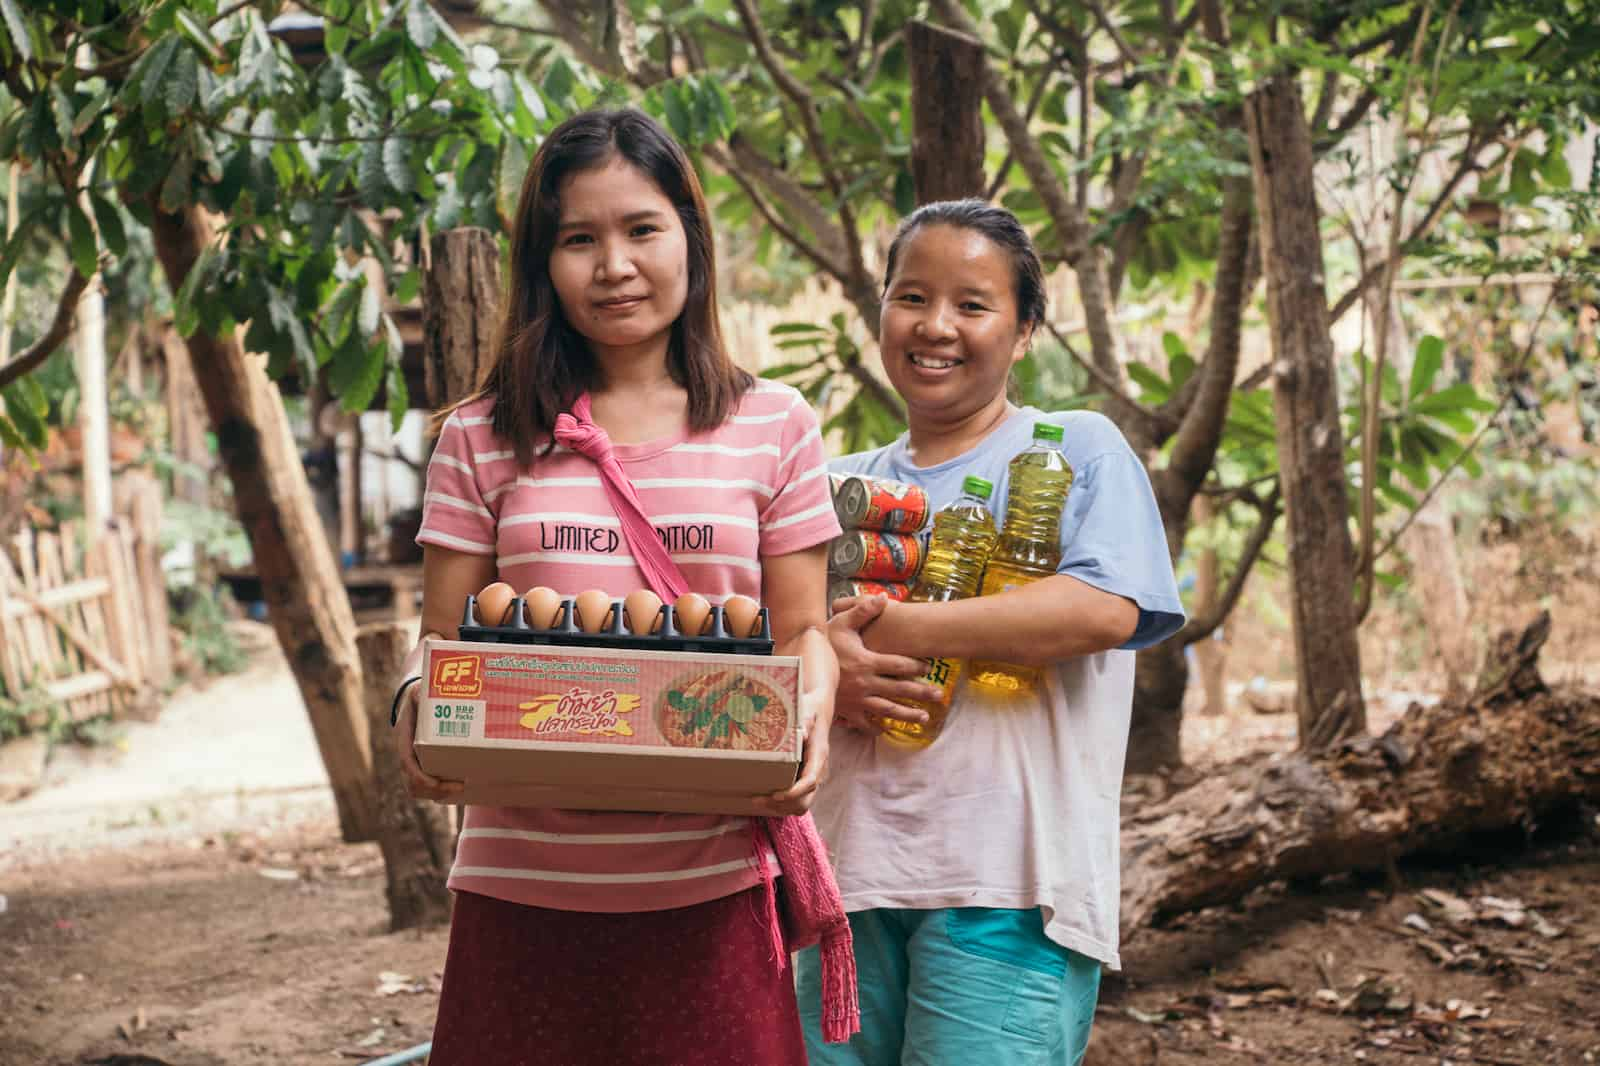 Two women holding an armful of food.